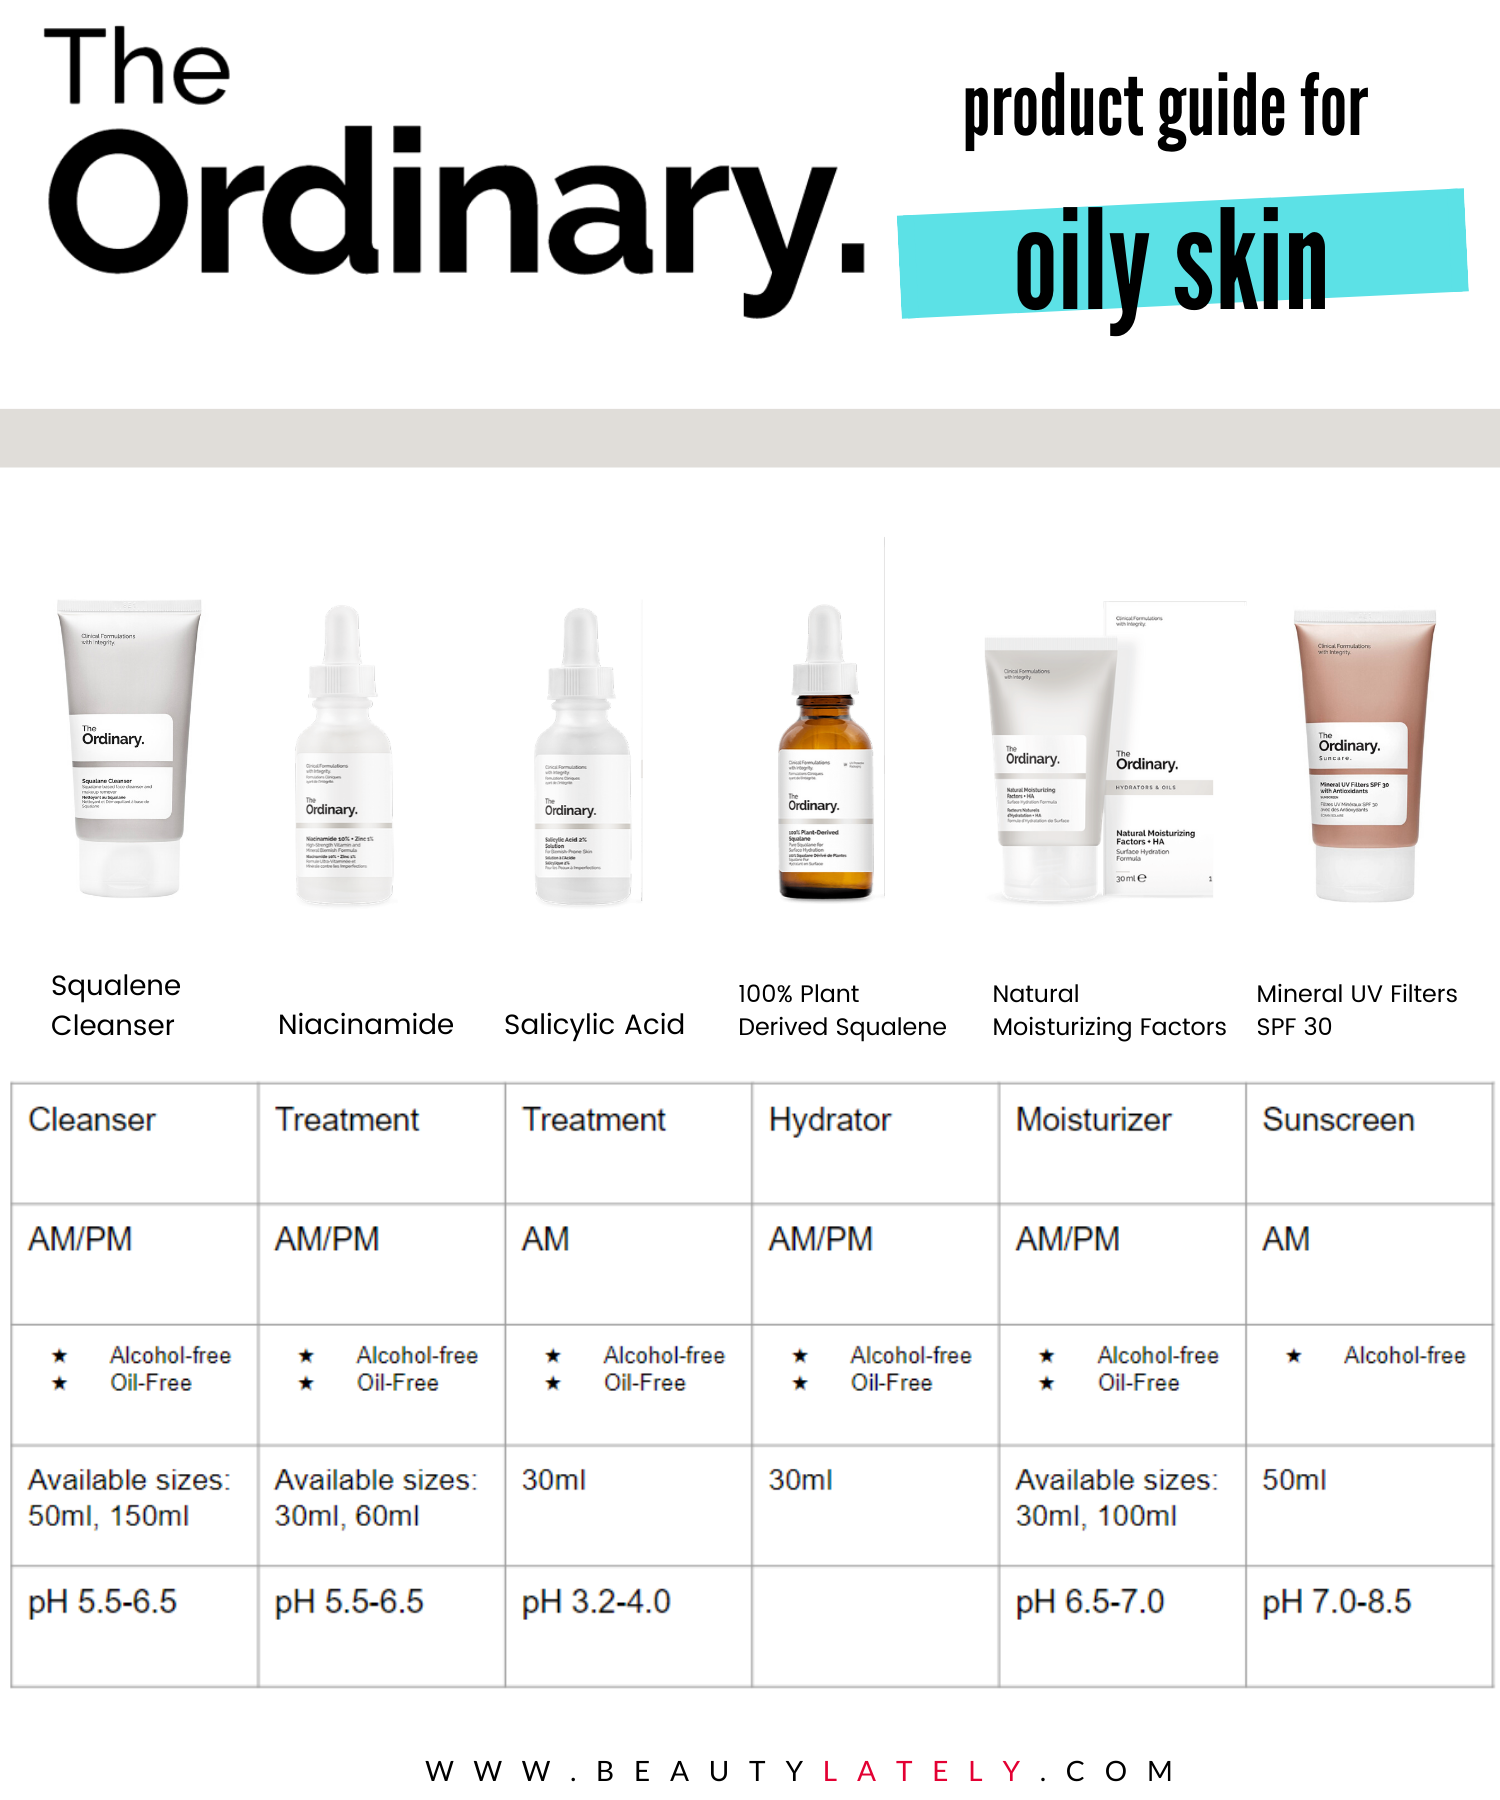 The Ordinary Skincare Guide To Oily Acne Prone Skin In 2020 Skin Acne Treatment Oily Skin Care Oily Skin Care Routine